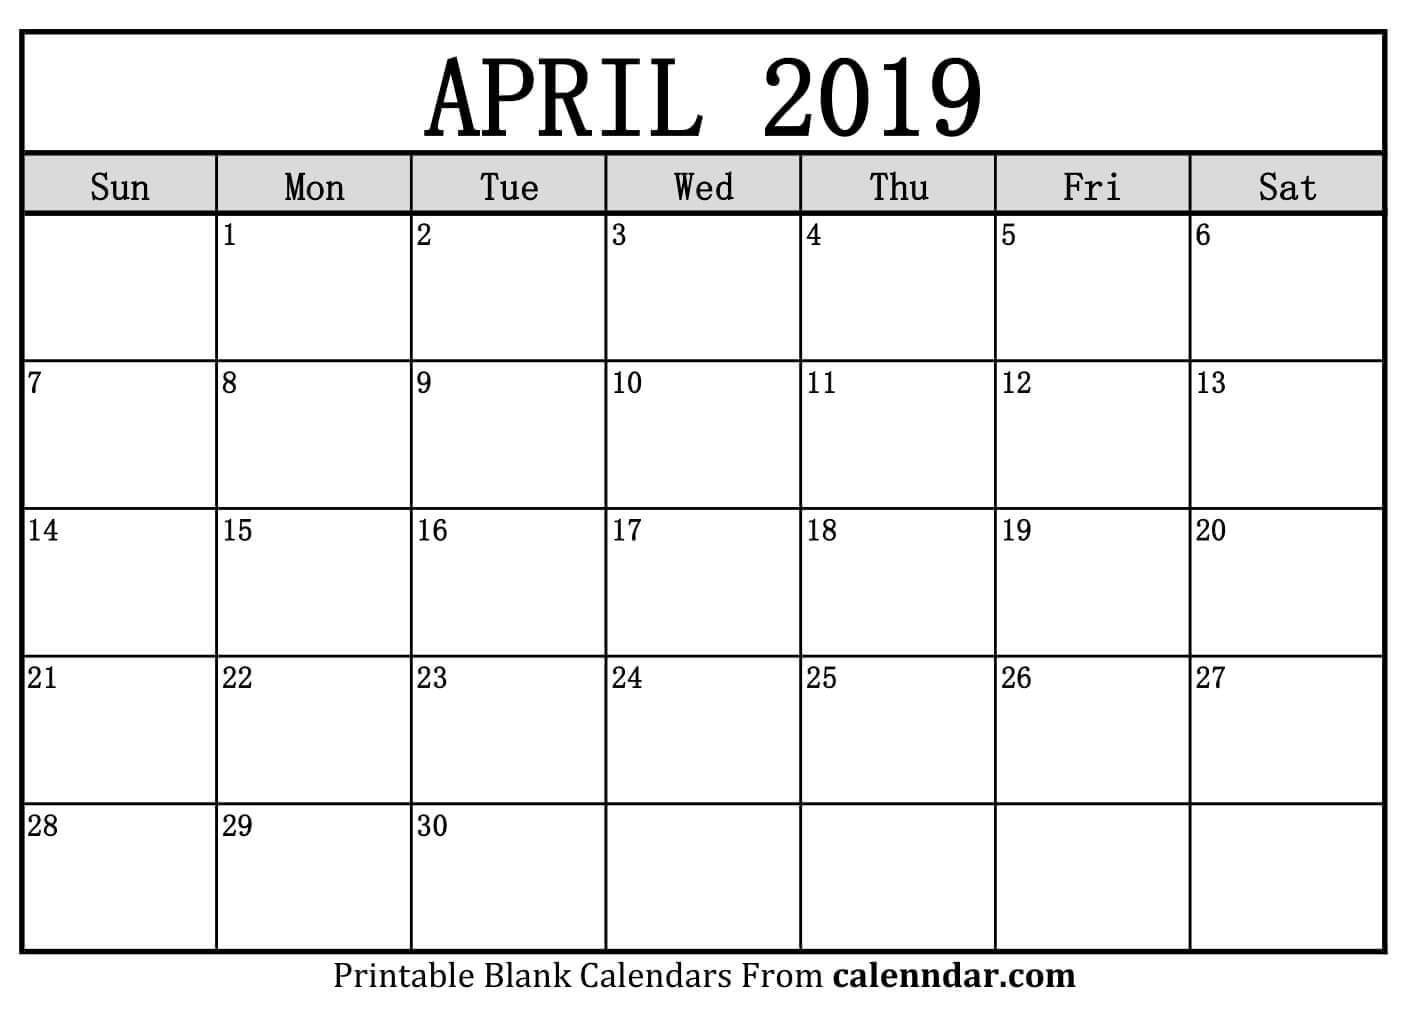 2019 April Calendar Template - Printable Calendar 2019| Blank intended for April Calendar Template